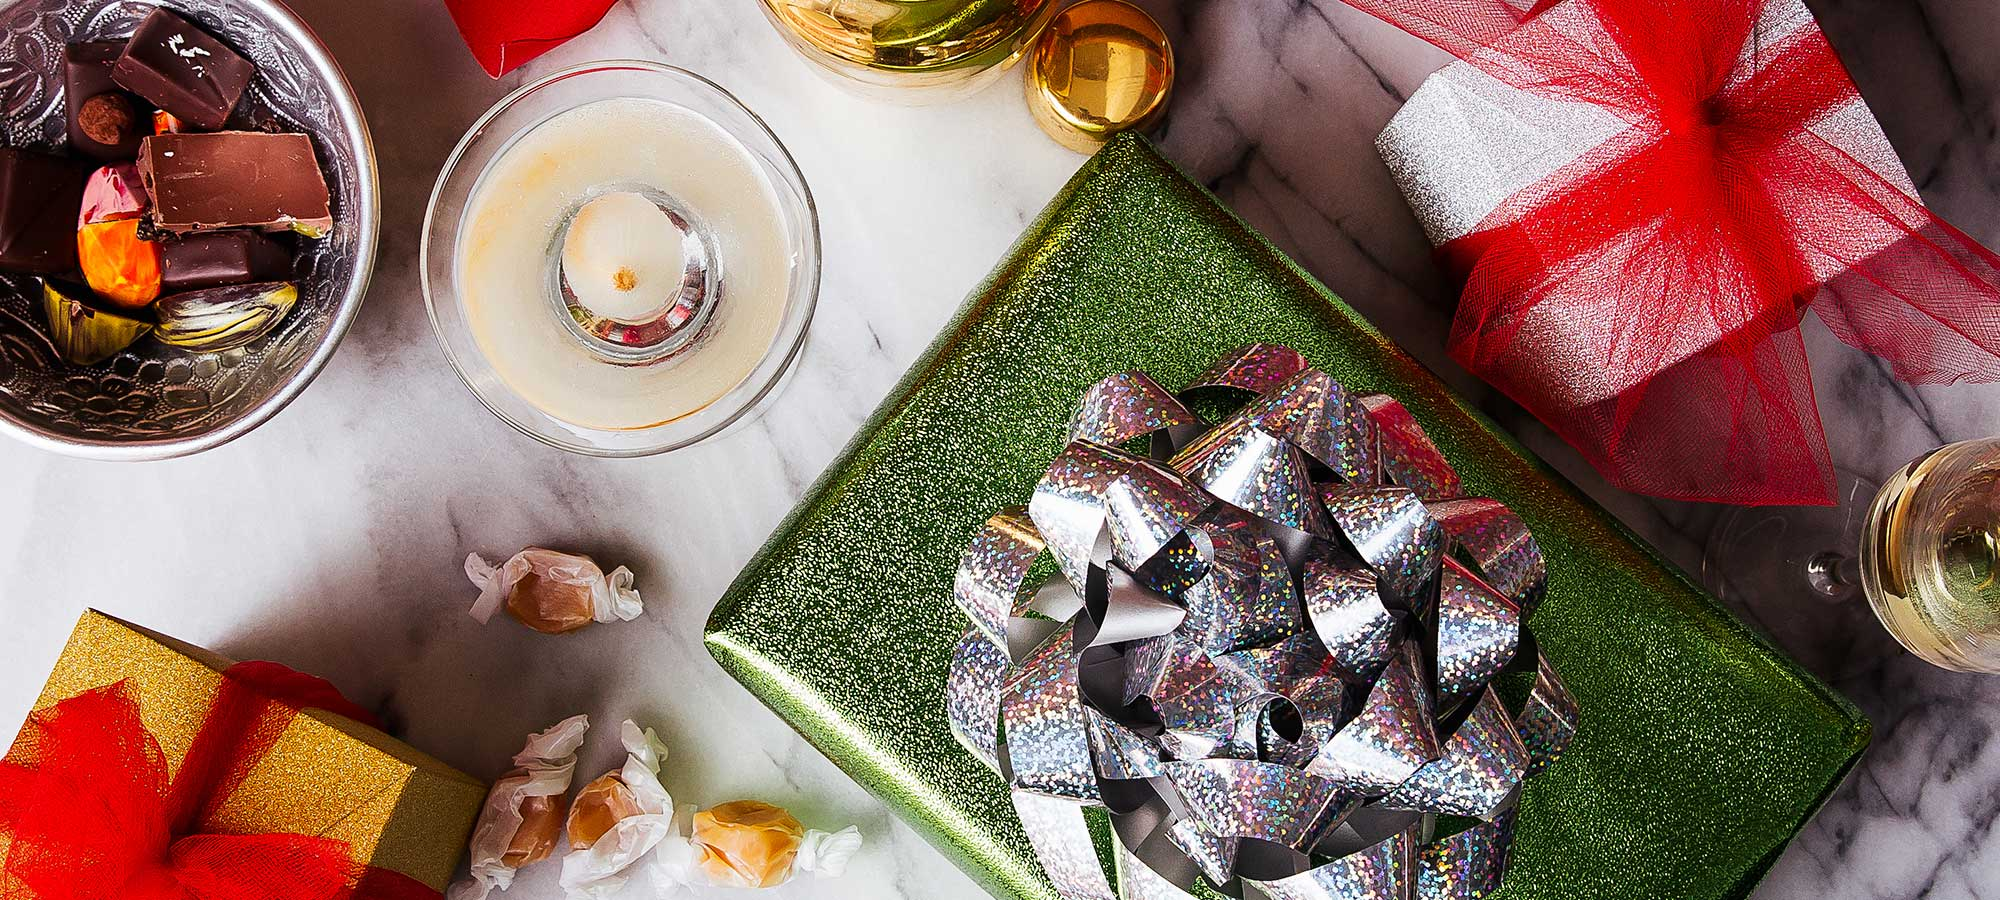 The 2019 SAVEUR Big Budget Gift Guide